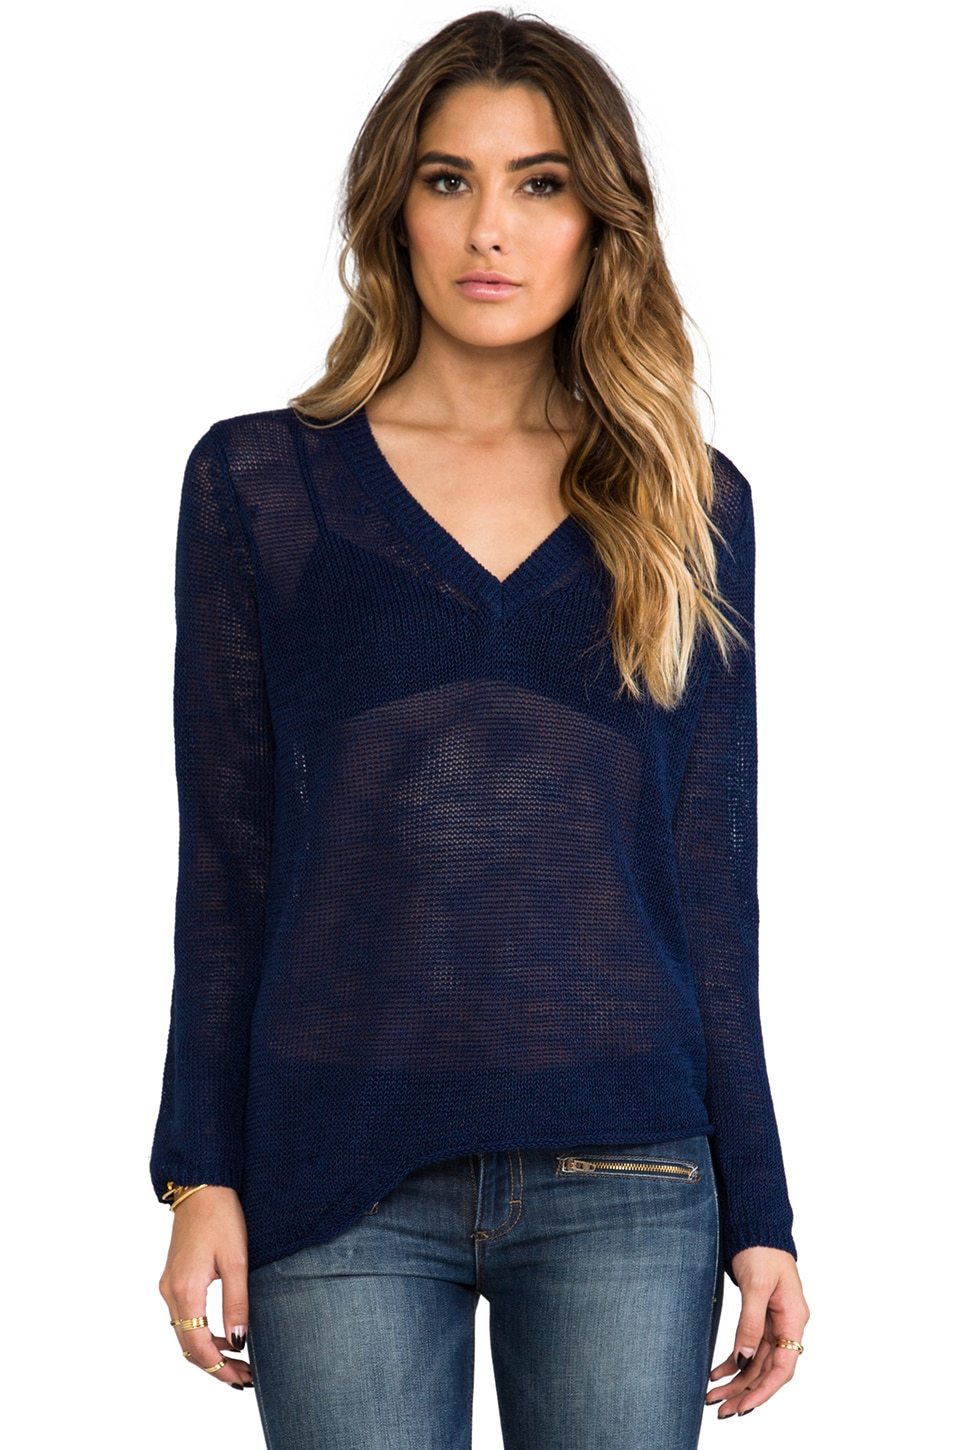 360CASHMERE Gaia Sweater in Indigo